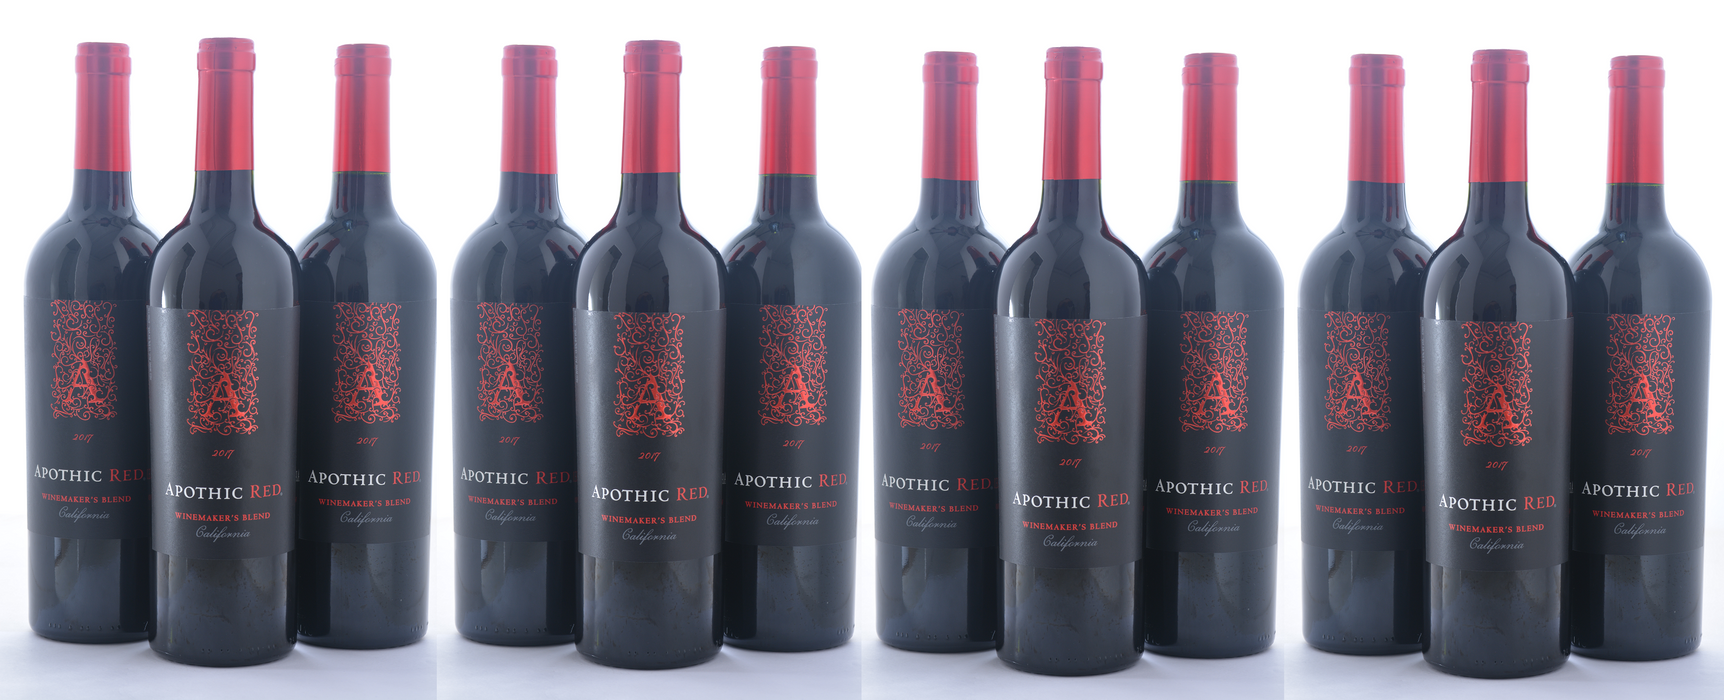 Groupon Apothic Red Blend Wine - 18 Pack - Wine on Sale